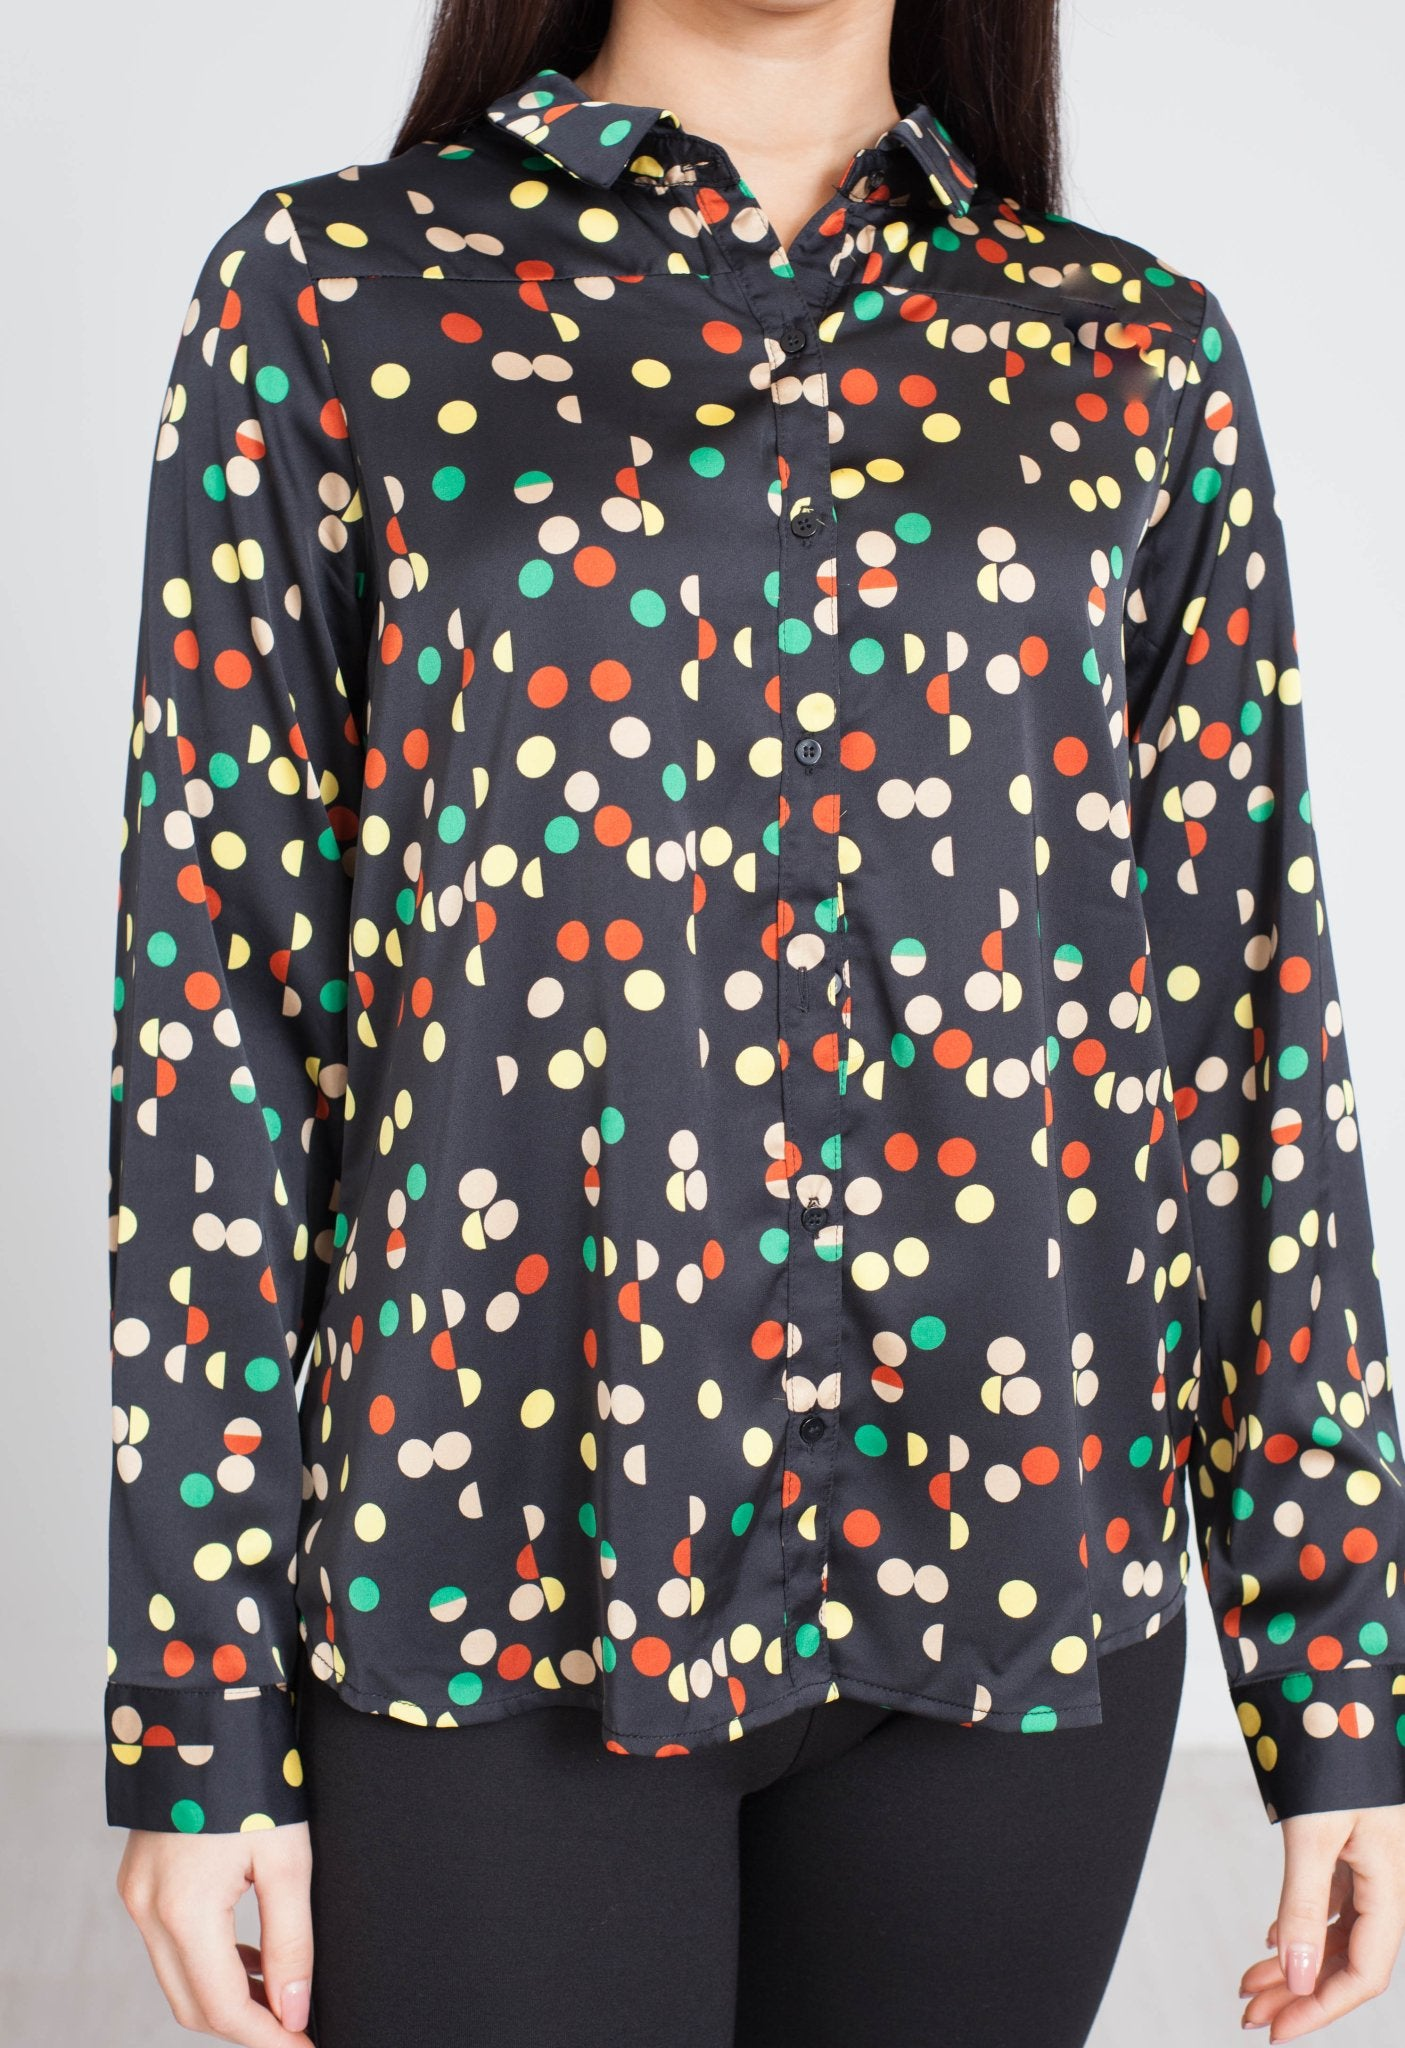 Frankie Polka Dot Shirt In Black - The Walk in Wardrobe